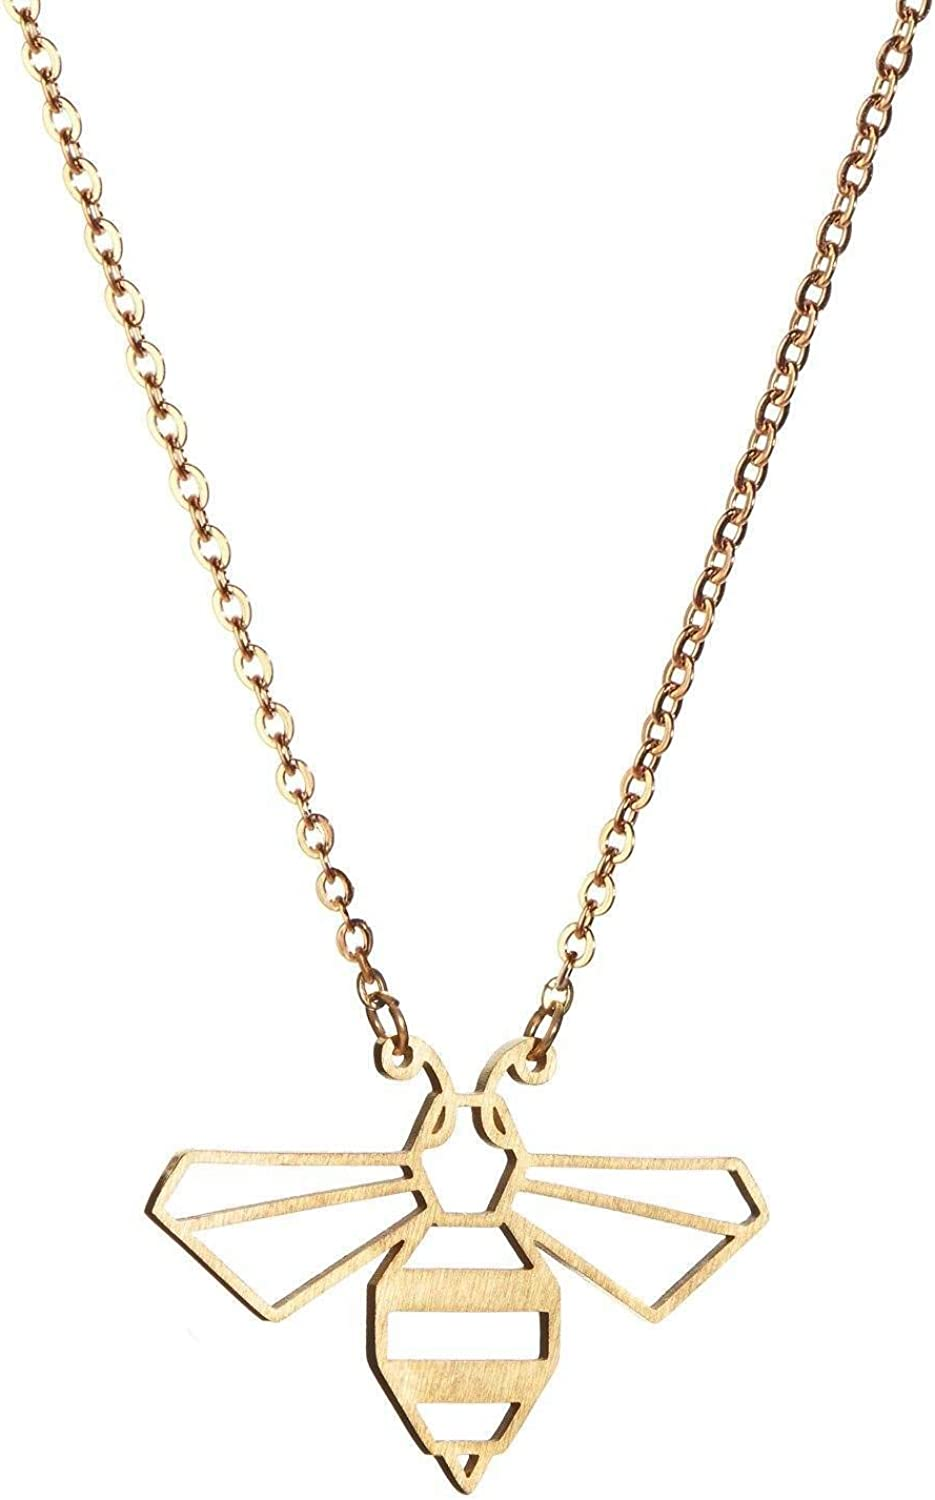 La Menagerie Bee Gold Origami Jewelry - Gold Geometric Chain Necklace – 18 Karat Plated Gold Necklace for Women & Girls – Stylish Bee Pendant Necklace